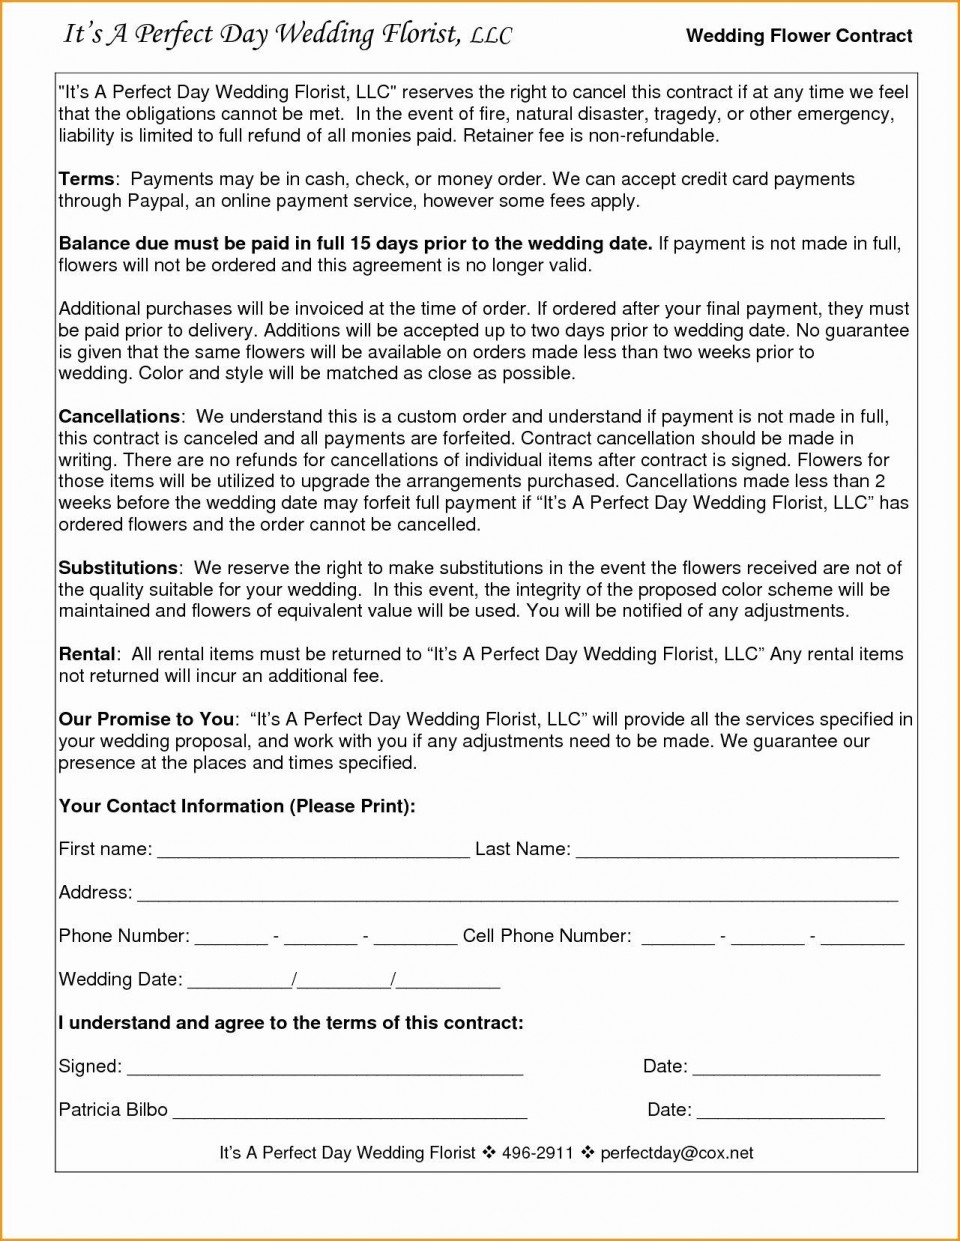 005 Amazing Wedding Videography Contract Template Highest Clarity  Pdf Example Word960